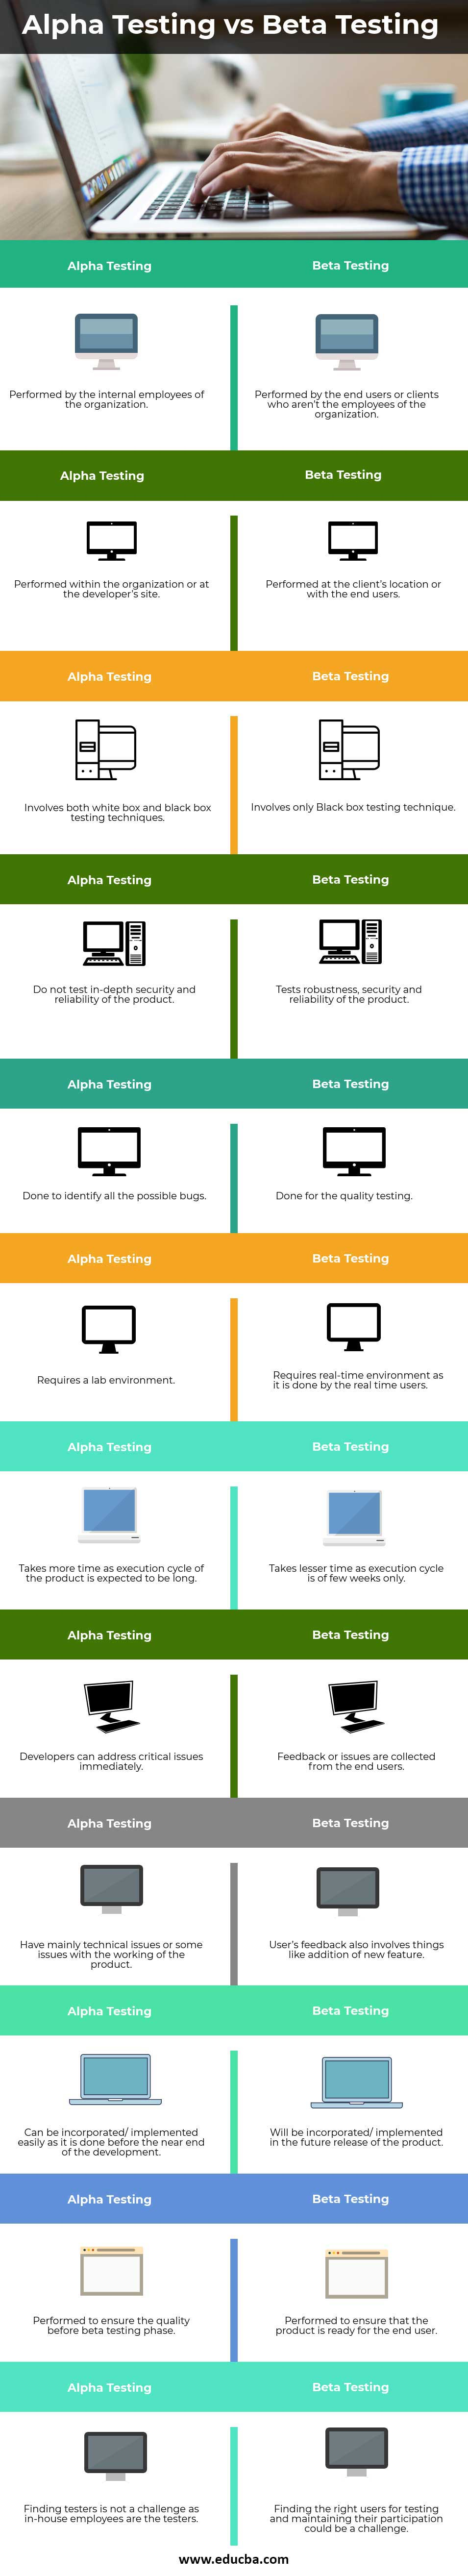 Alpha-Testing-vs-Beta-Testing-info